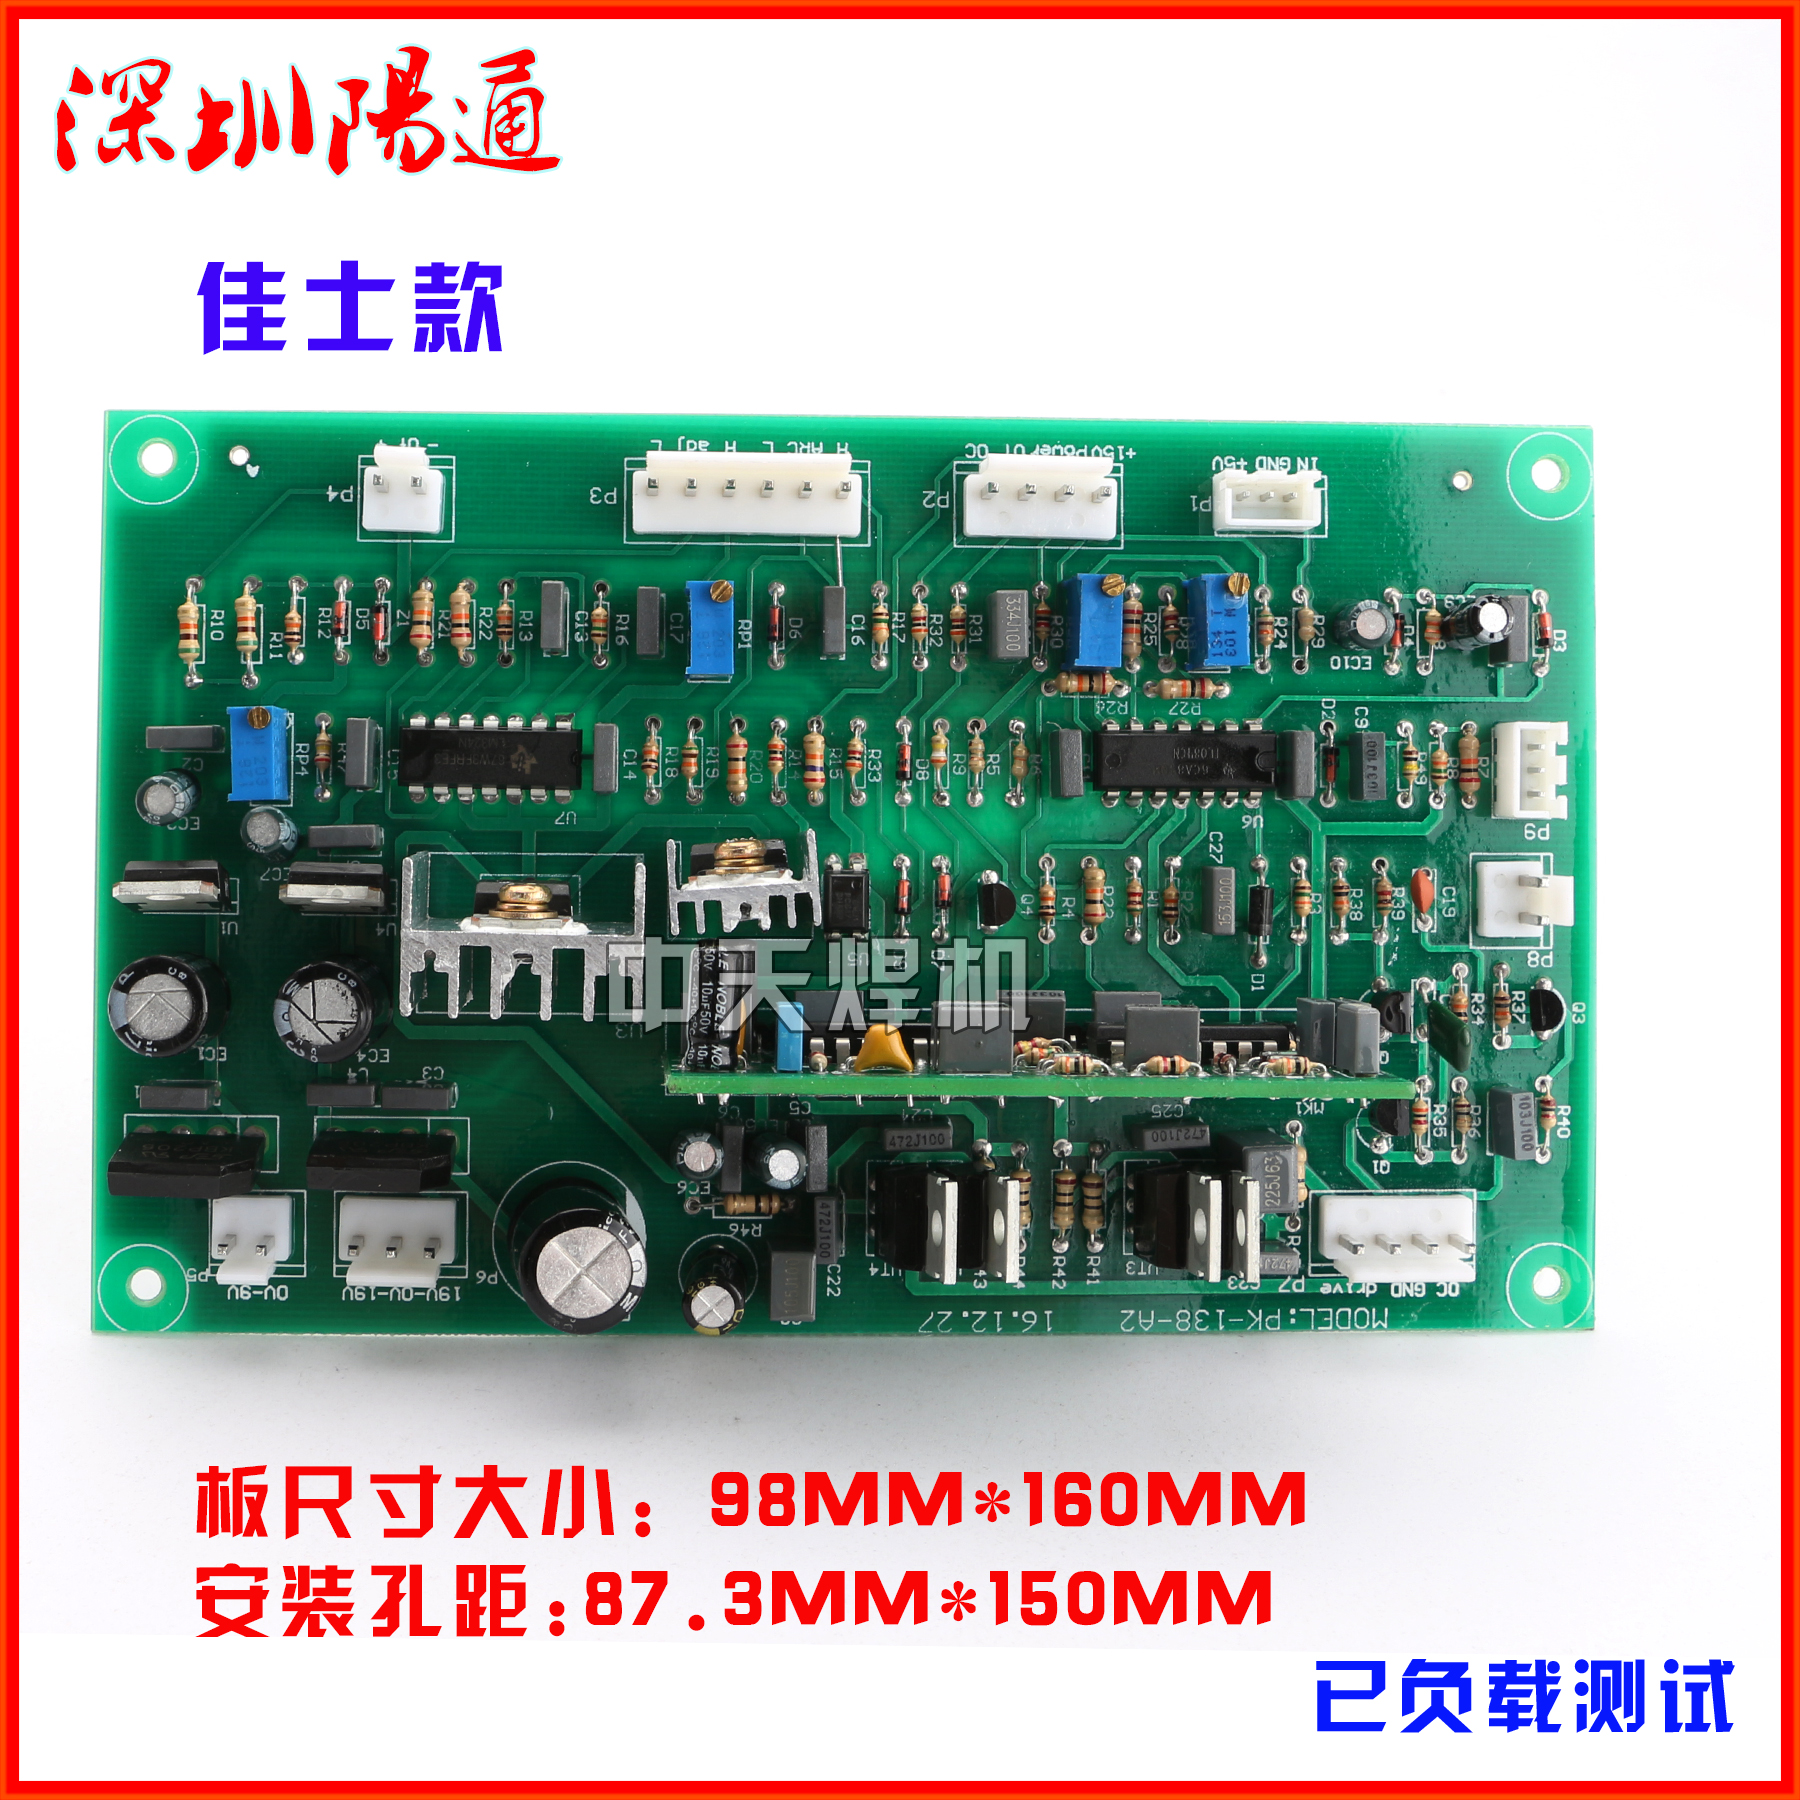 ZX7-400/500/315 Single Pipe DC Welding Machine Main Control Board, Circuit Board Maintenance Parts zx7 250s single tube igbt double voltage dc welding inverter upper board control board circuit board maintenance replacement